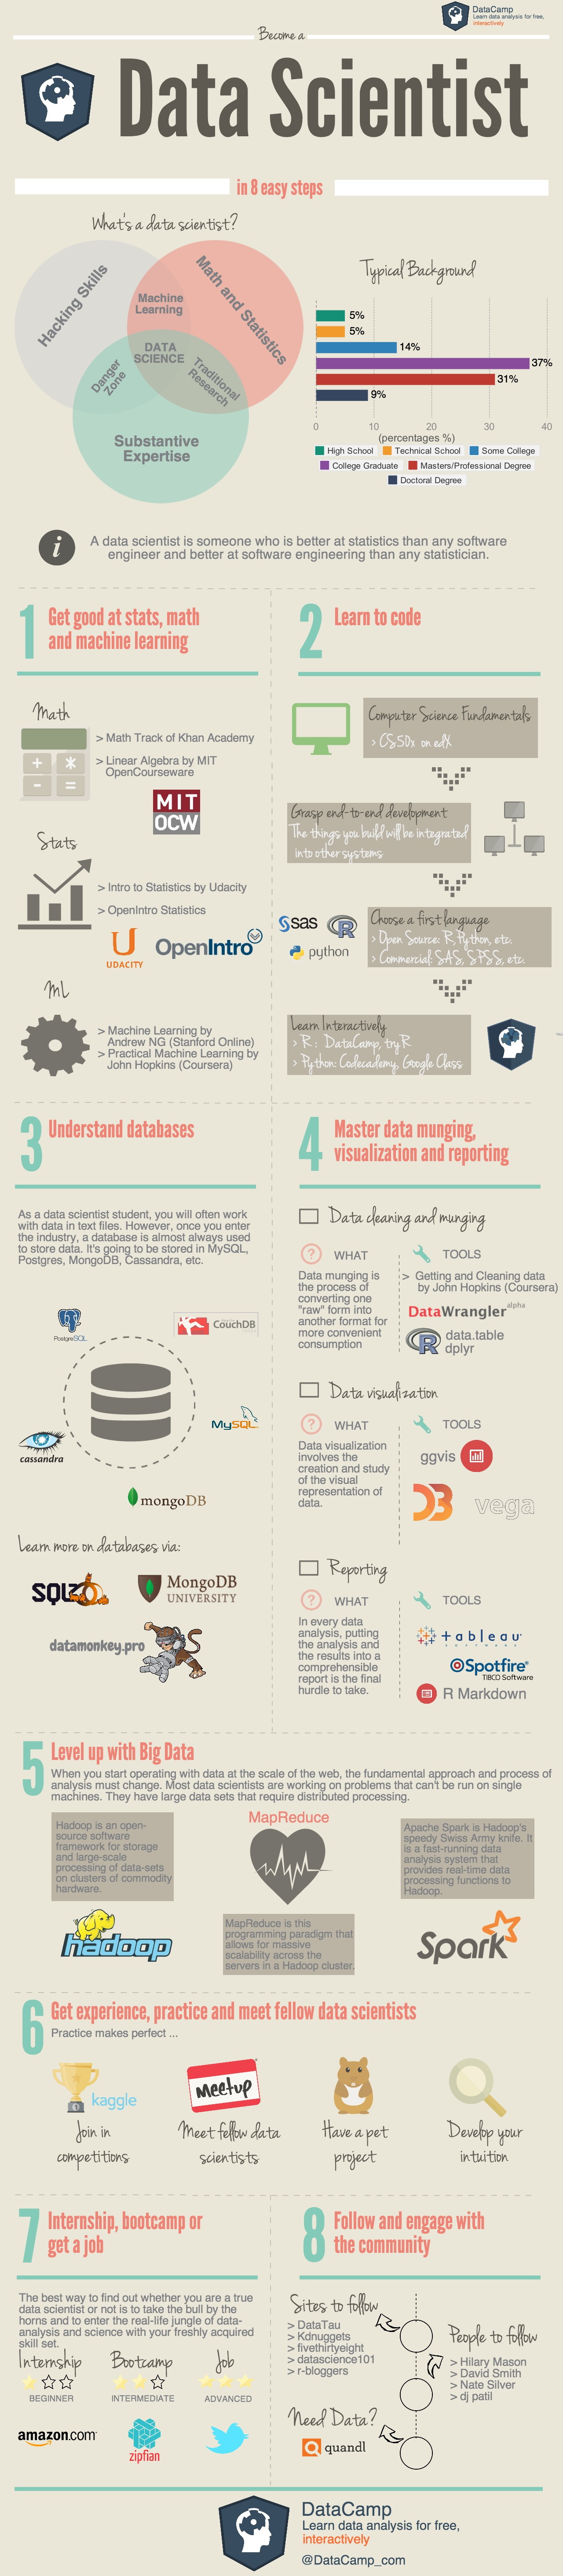 How-to-become-a-data-scientist-Datacamp